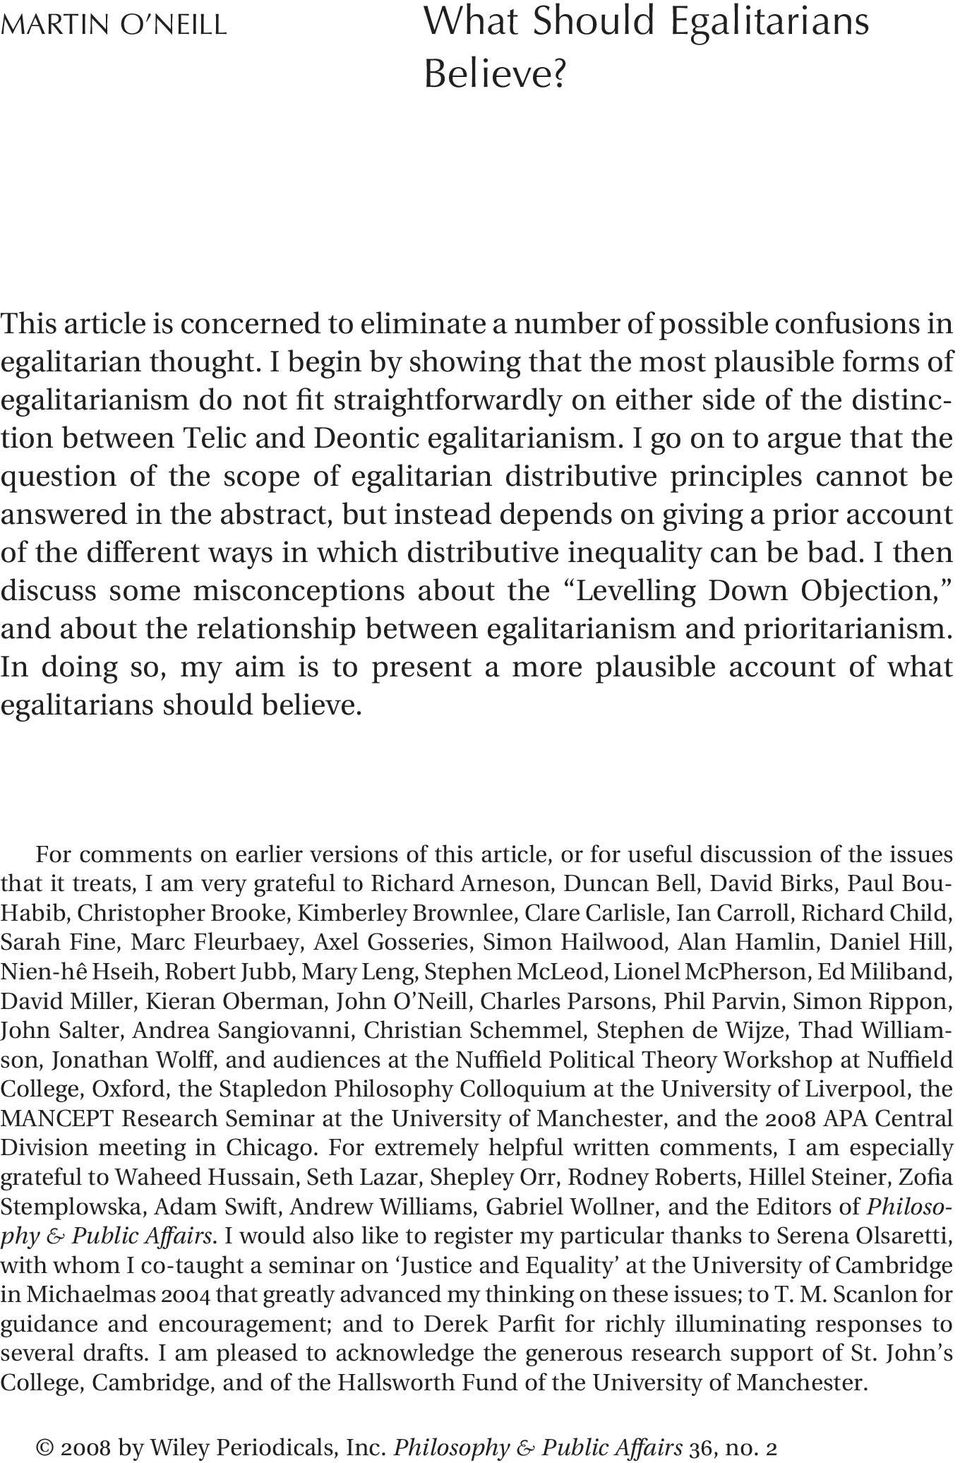 I go on to argue that the question of the scope of egalitarian distributive principles cannot be answered in the abstract, but instead depends on giving a prior account of the different ways in which